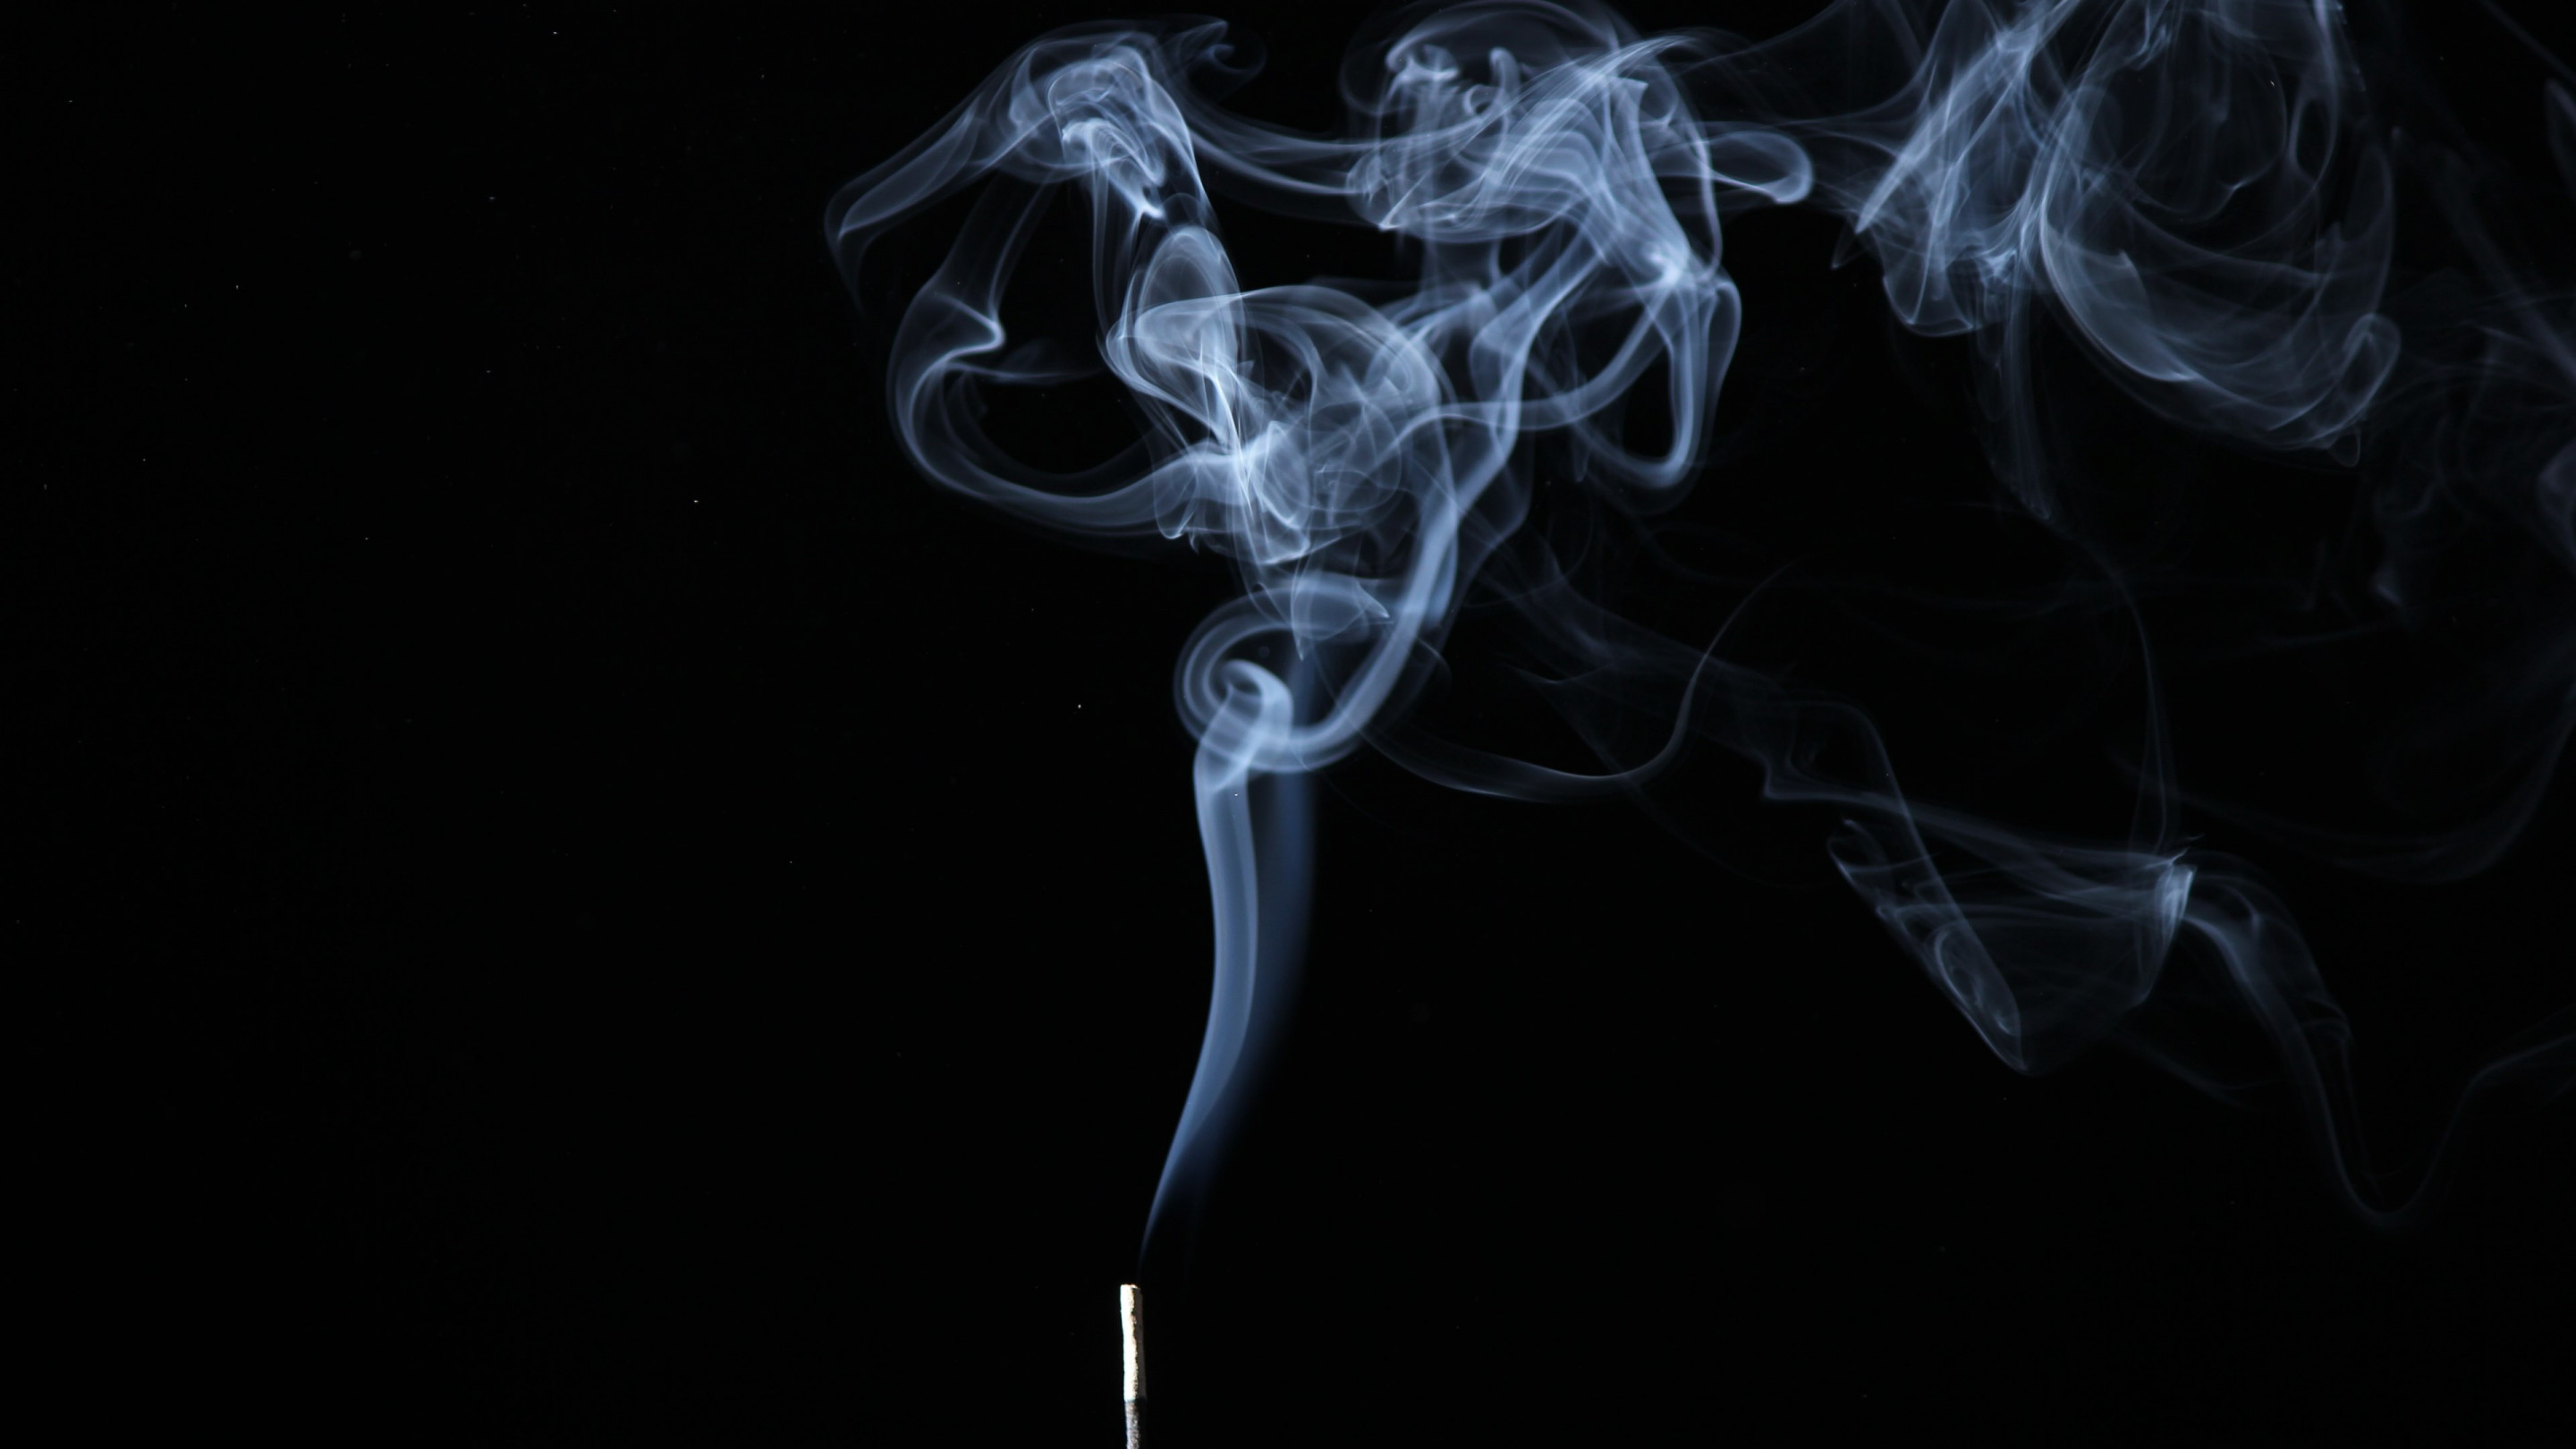 Smoke on black background wallpaper 2880x1620